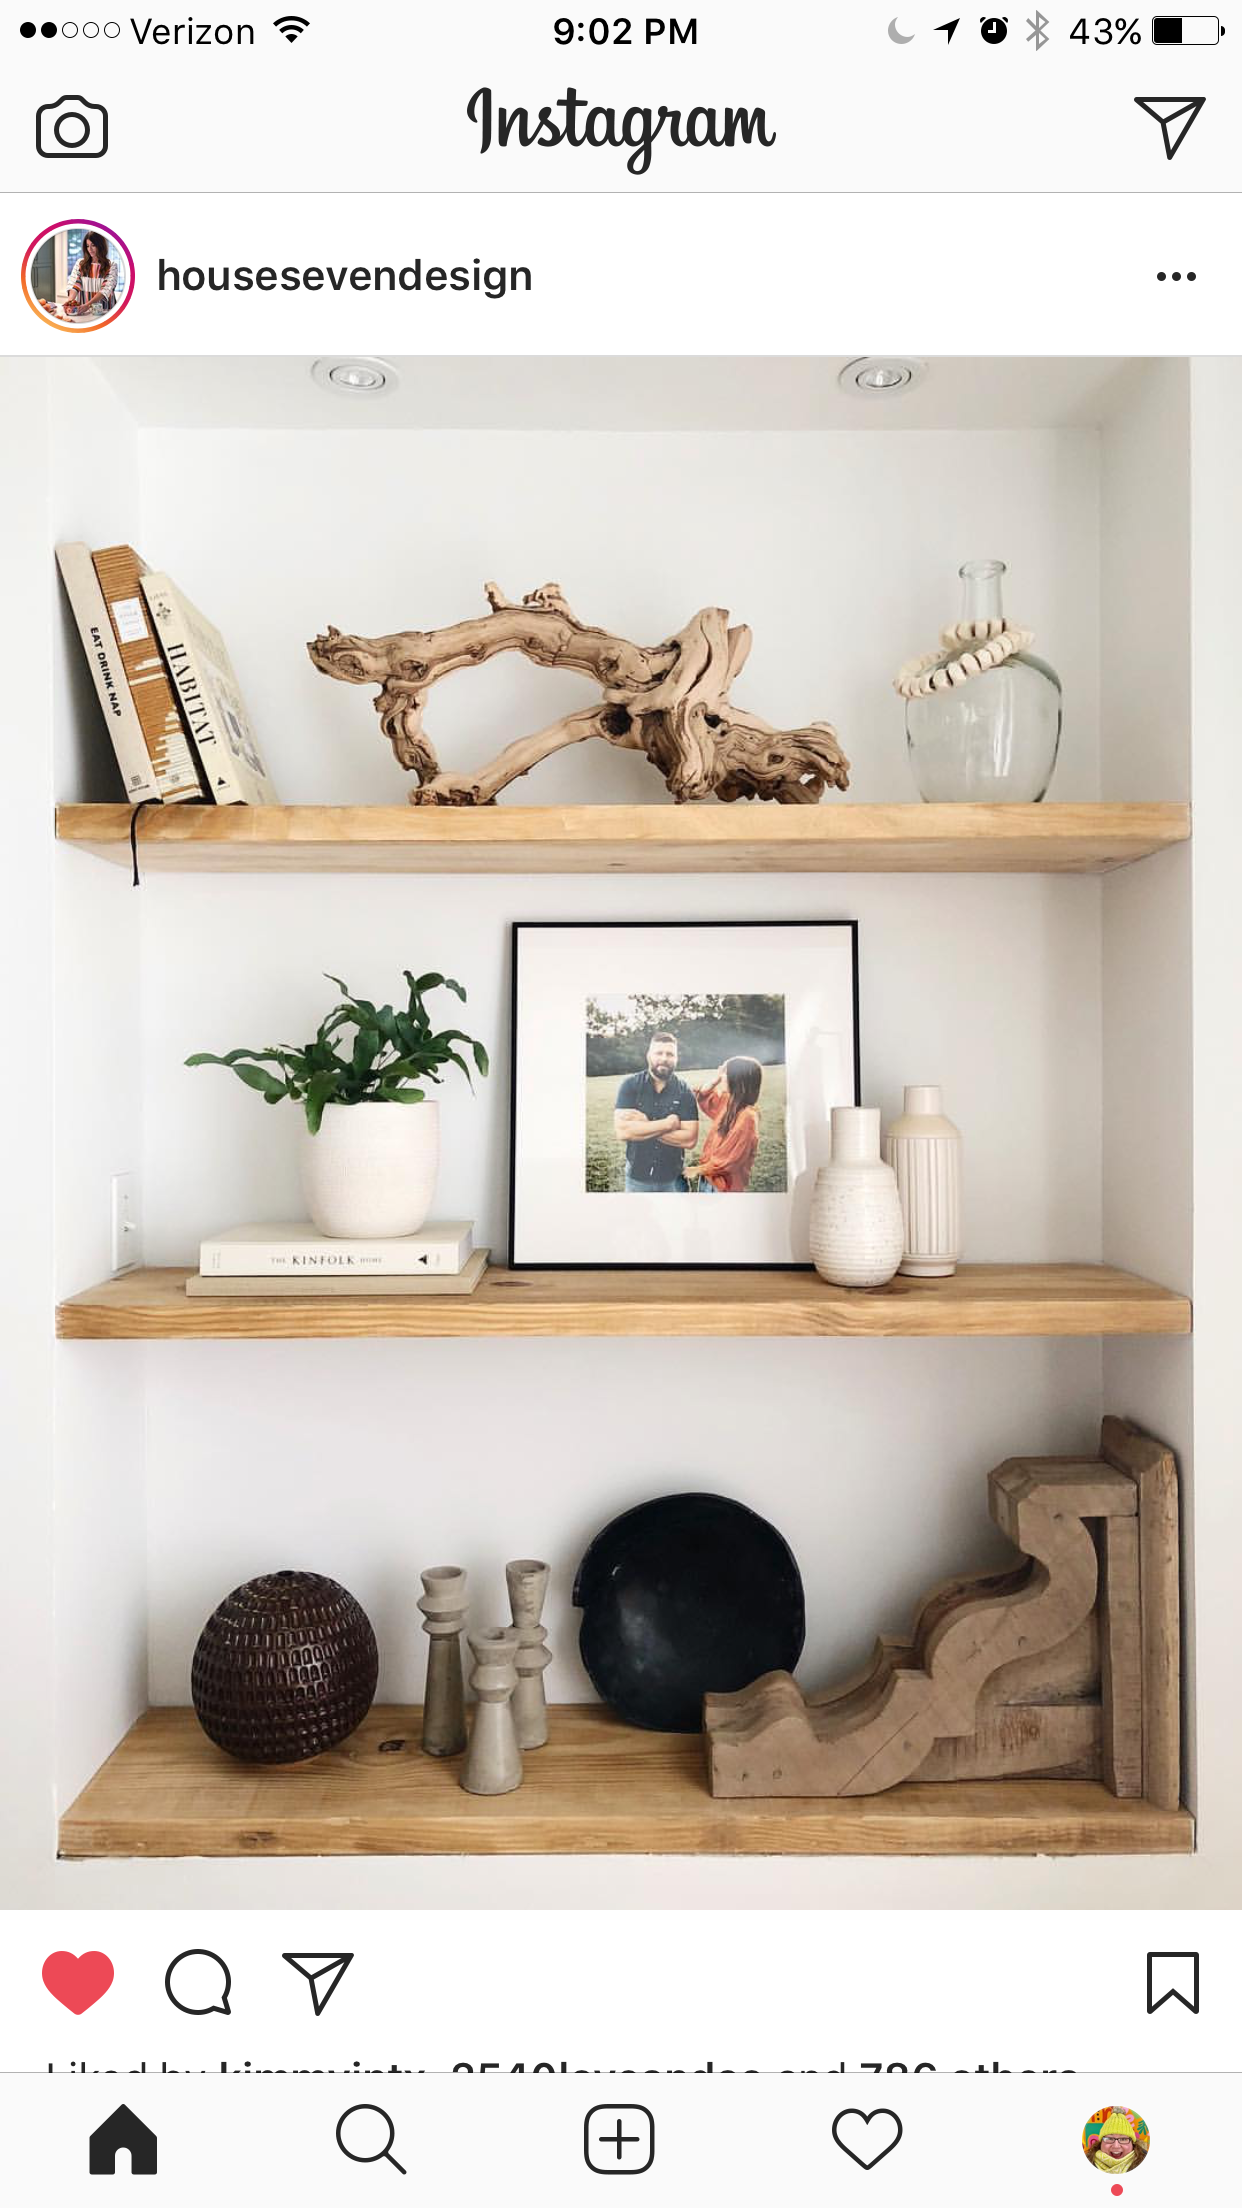 pin shannon cooper shelf styling shelves home decor canvas driftwood floating shelfie warm and cozy interior urban farmhouse told wall for receiver tures bathroom cabinets vanity